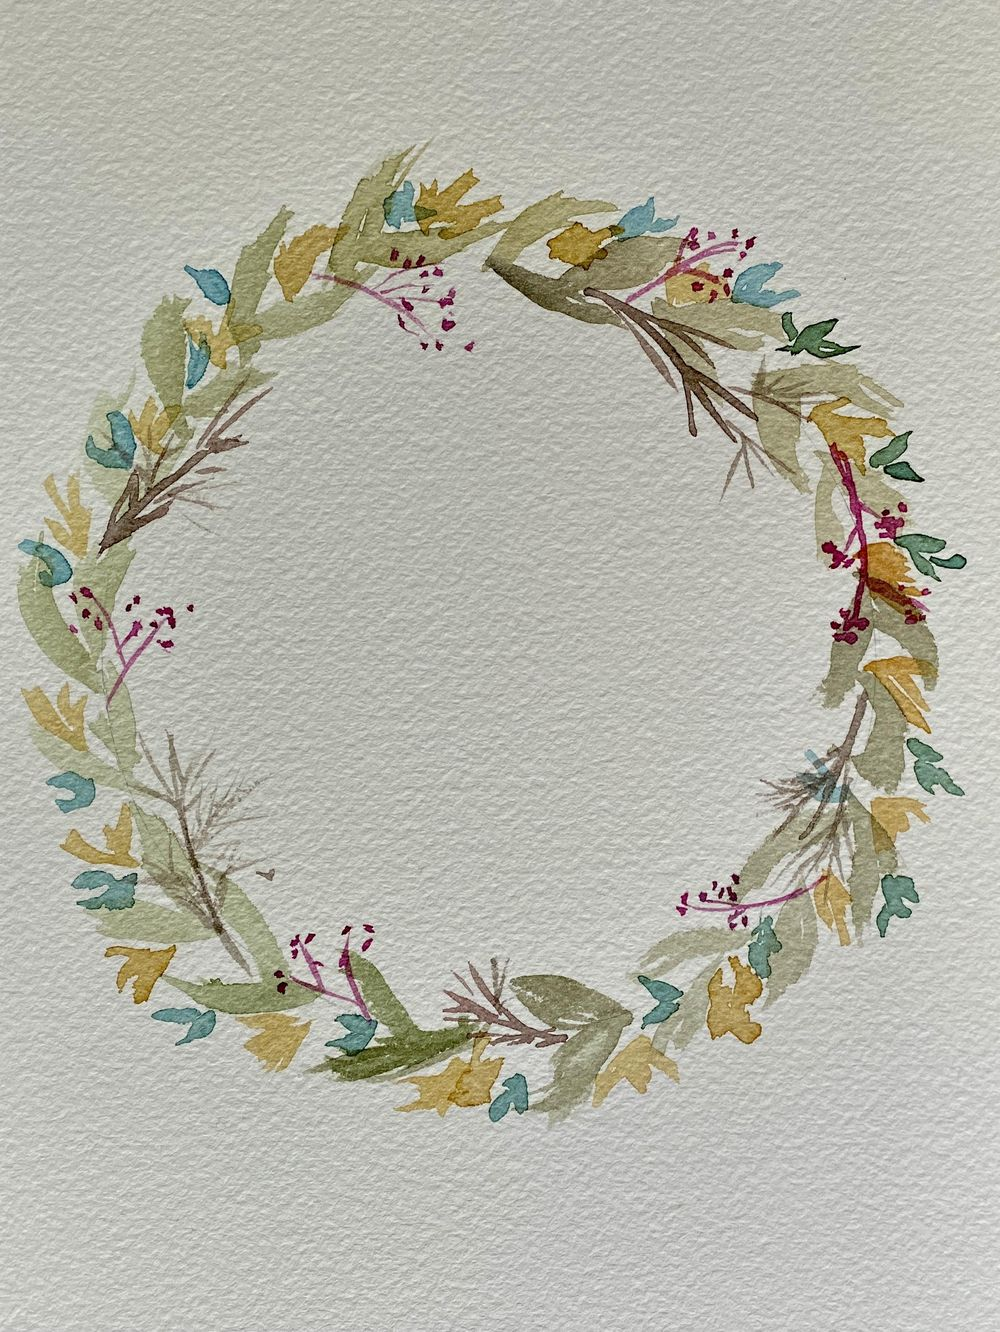 15 Minute Wreath - image 1 - student project